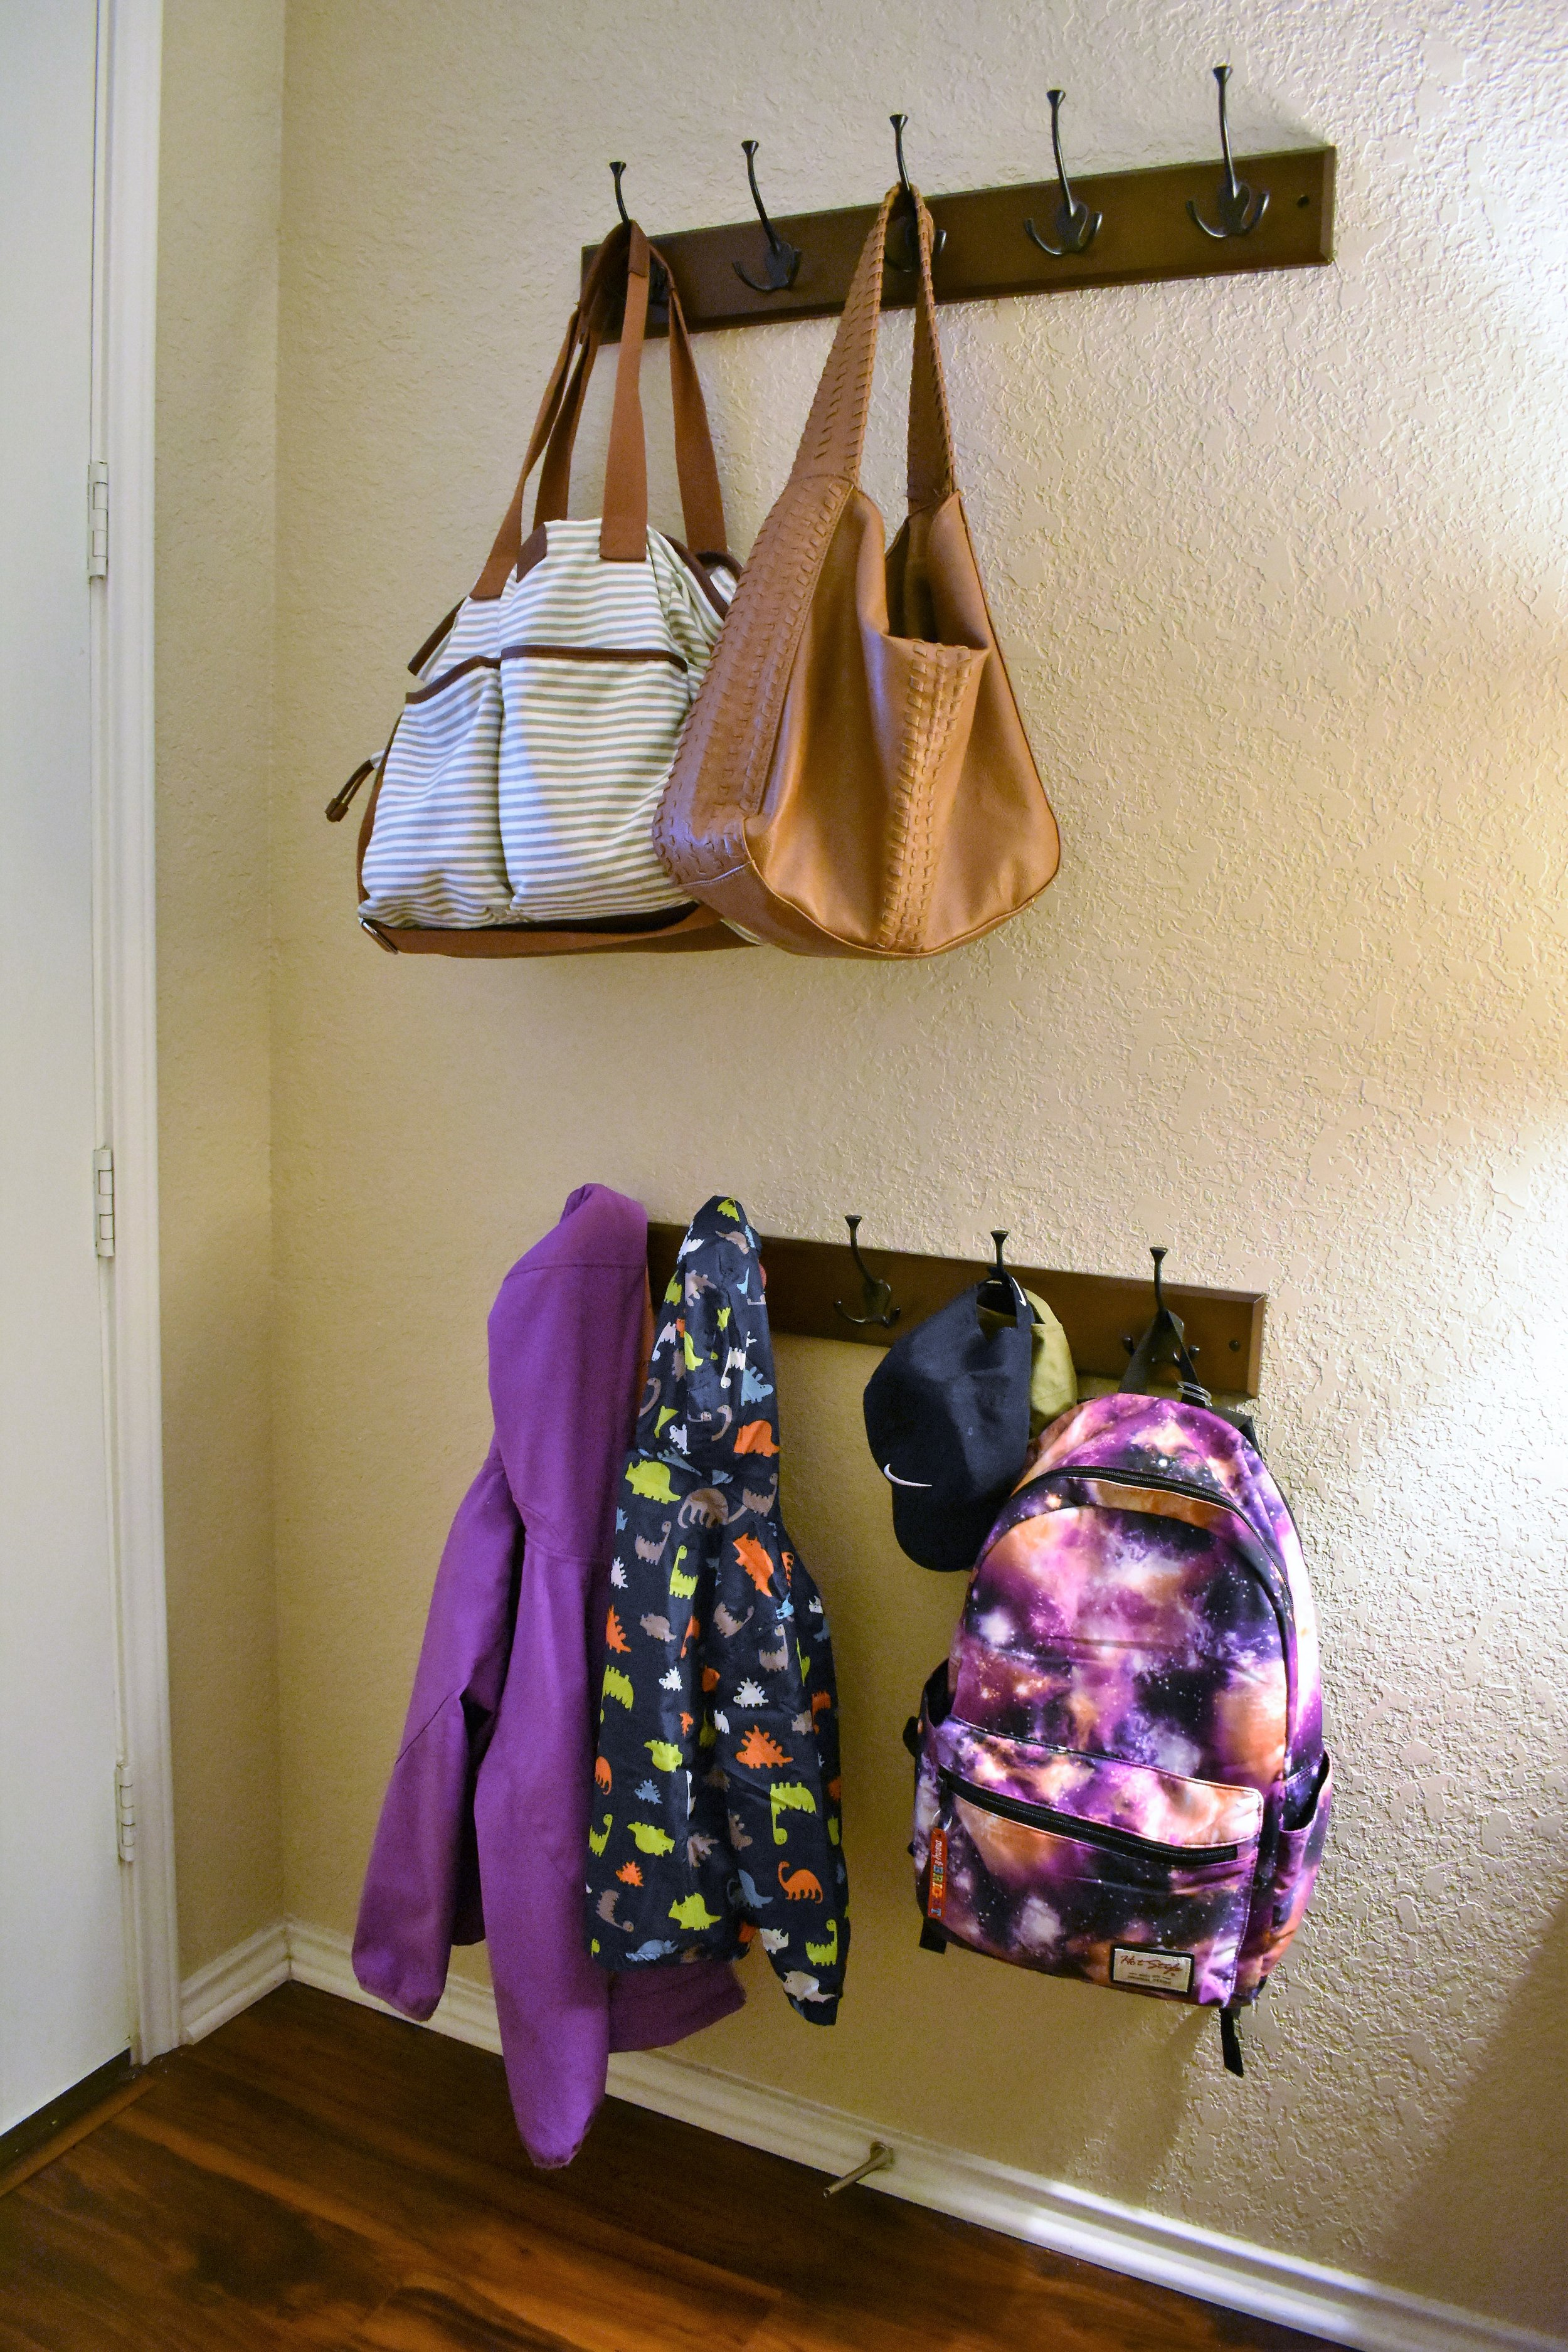 entryway entry way storage and organization - entry way entryway coat racks hooks